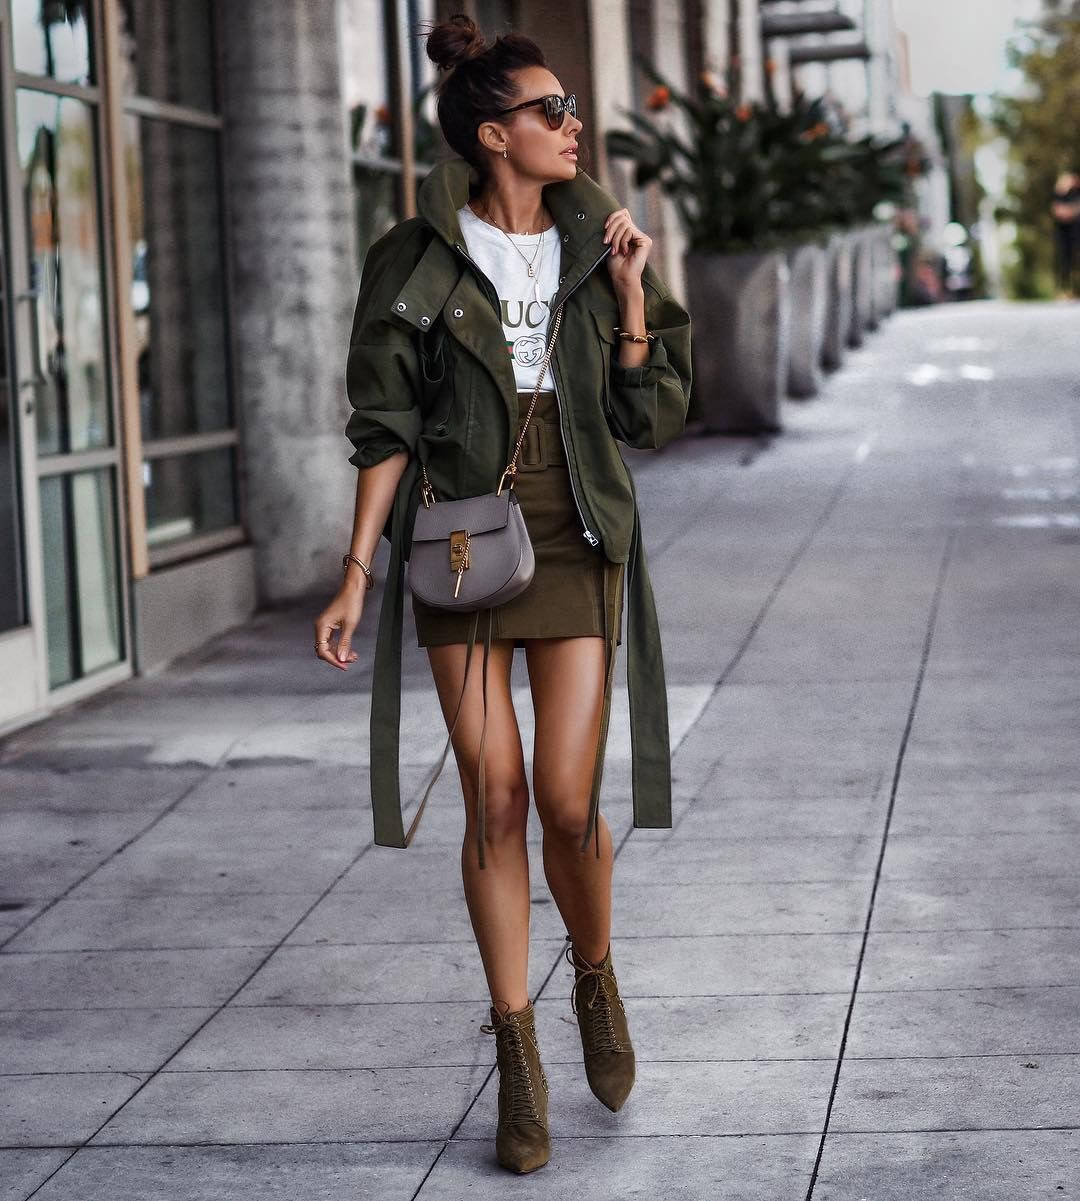 Colour outfit, you must try with miniskirt, shorts, jacket